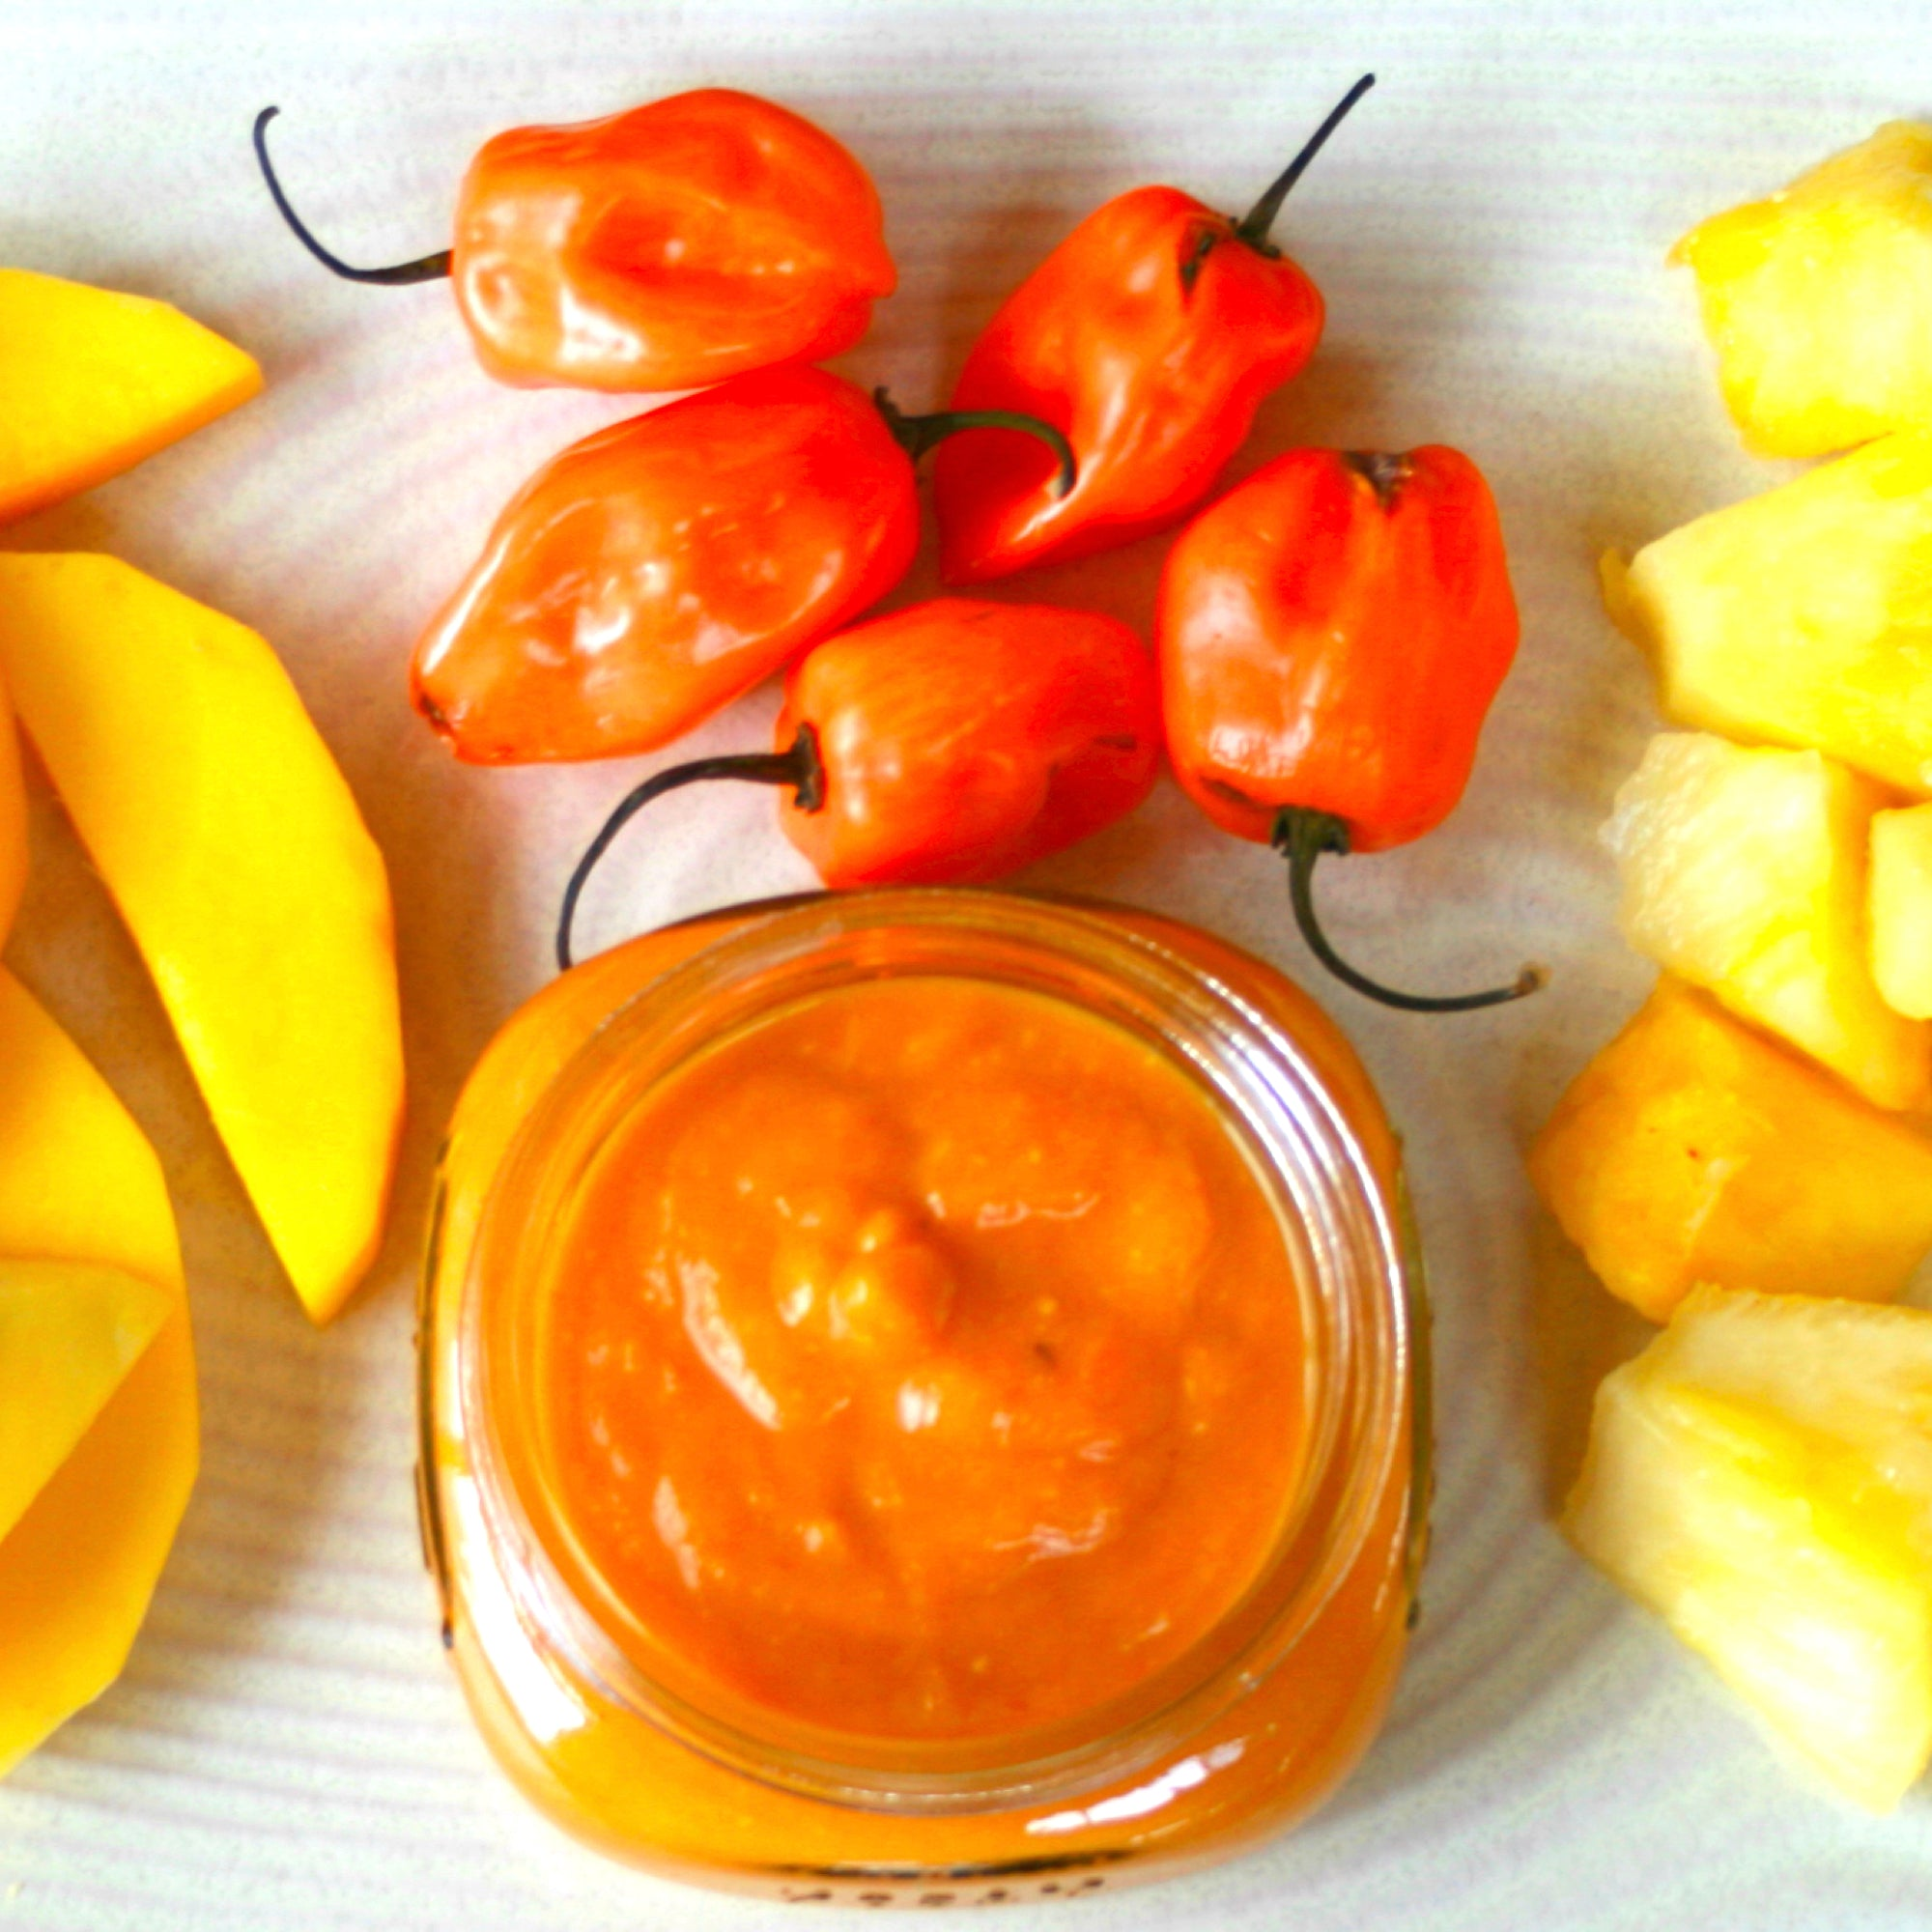 Arawak Farm Pepper Sauce - Mango Pineapple